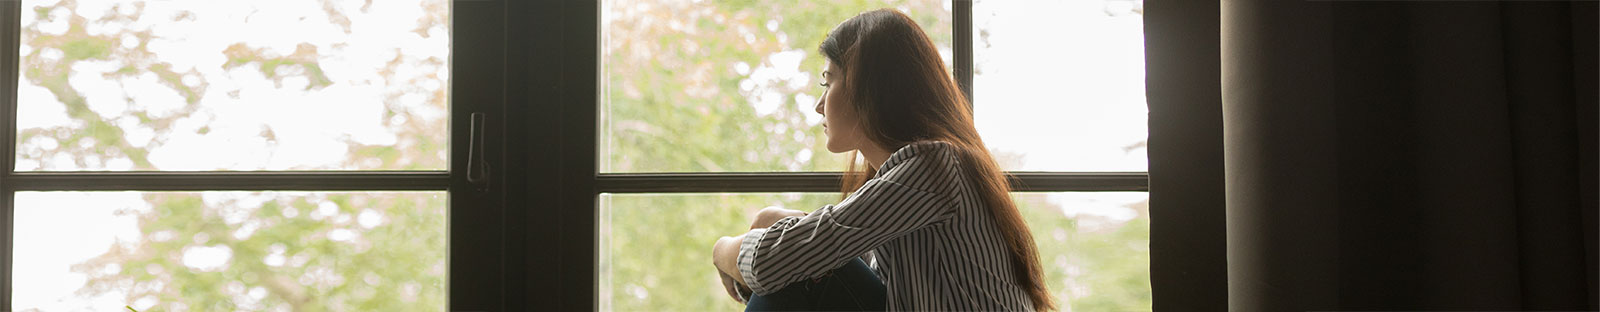 Thoughtful woman sitting on sill embracing knees looking at window